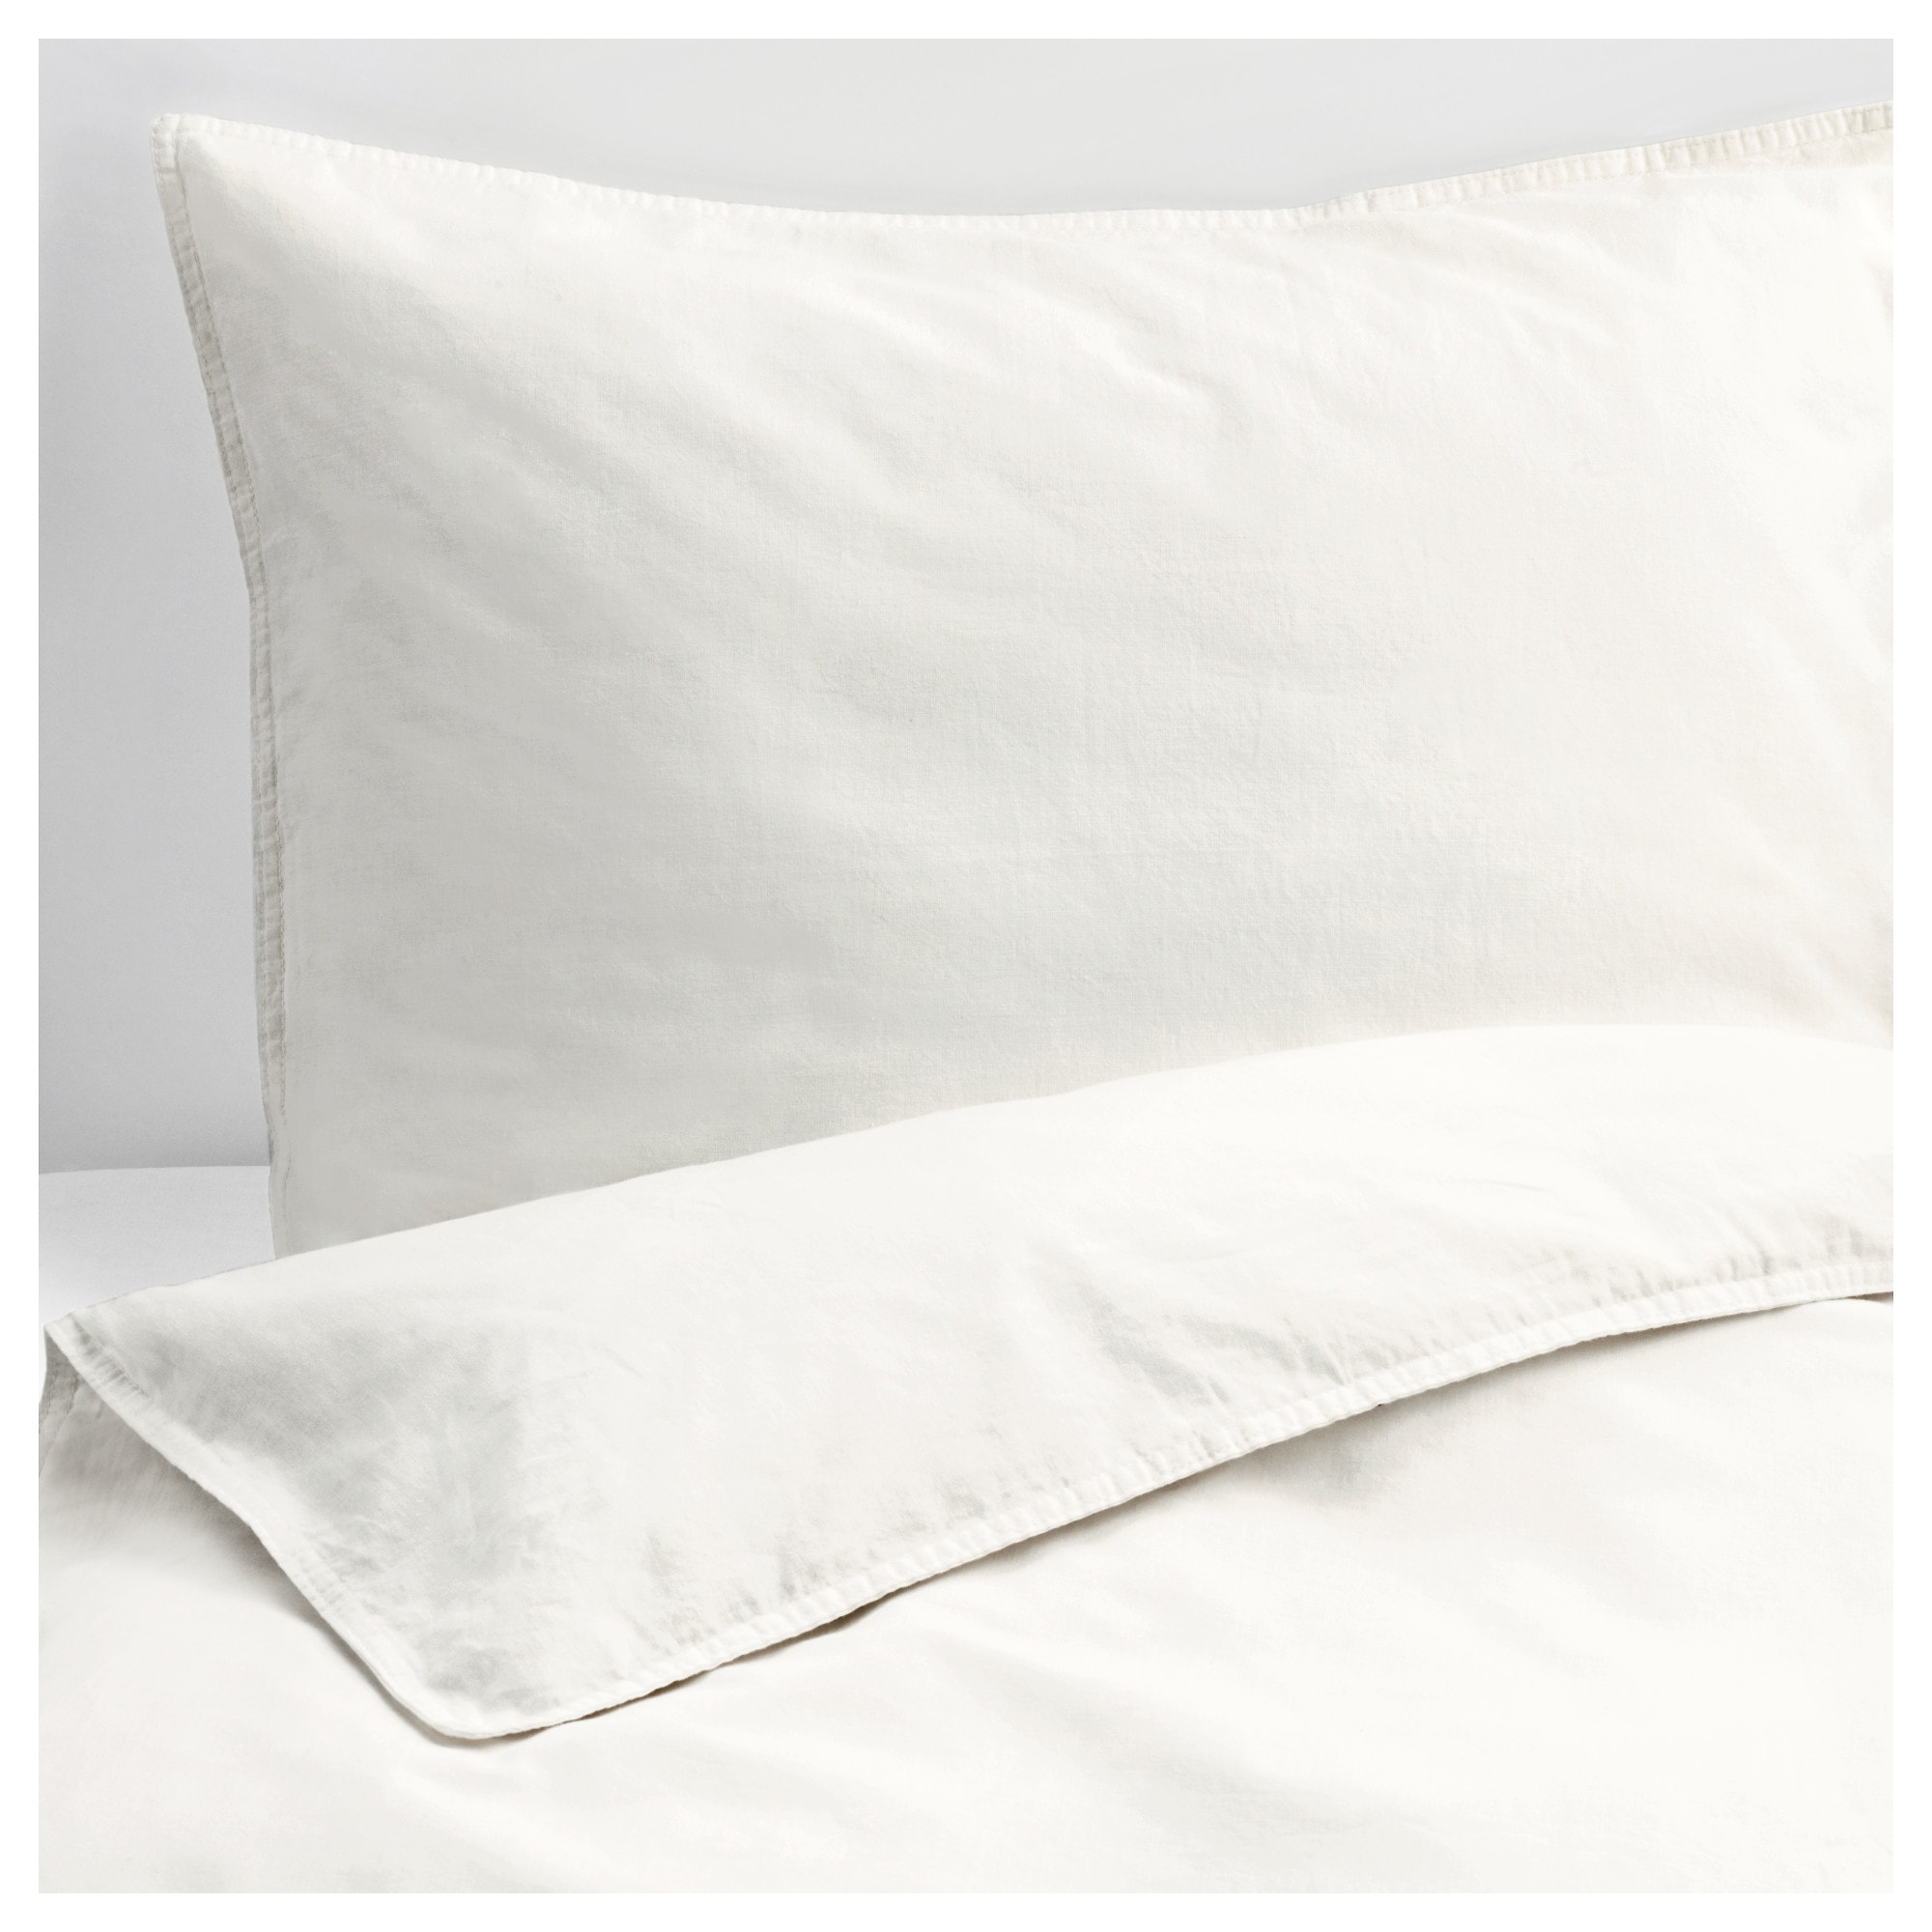 ngslilja duvet cover and pillowcases white thread count 125 inch